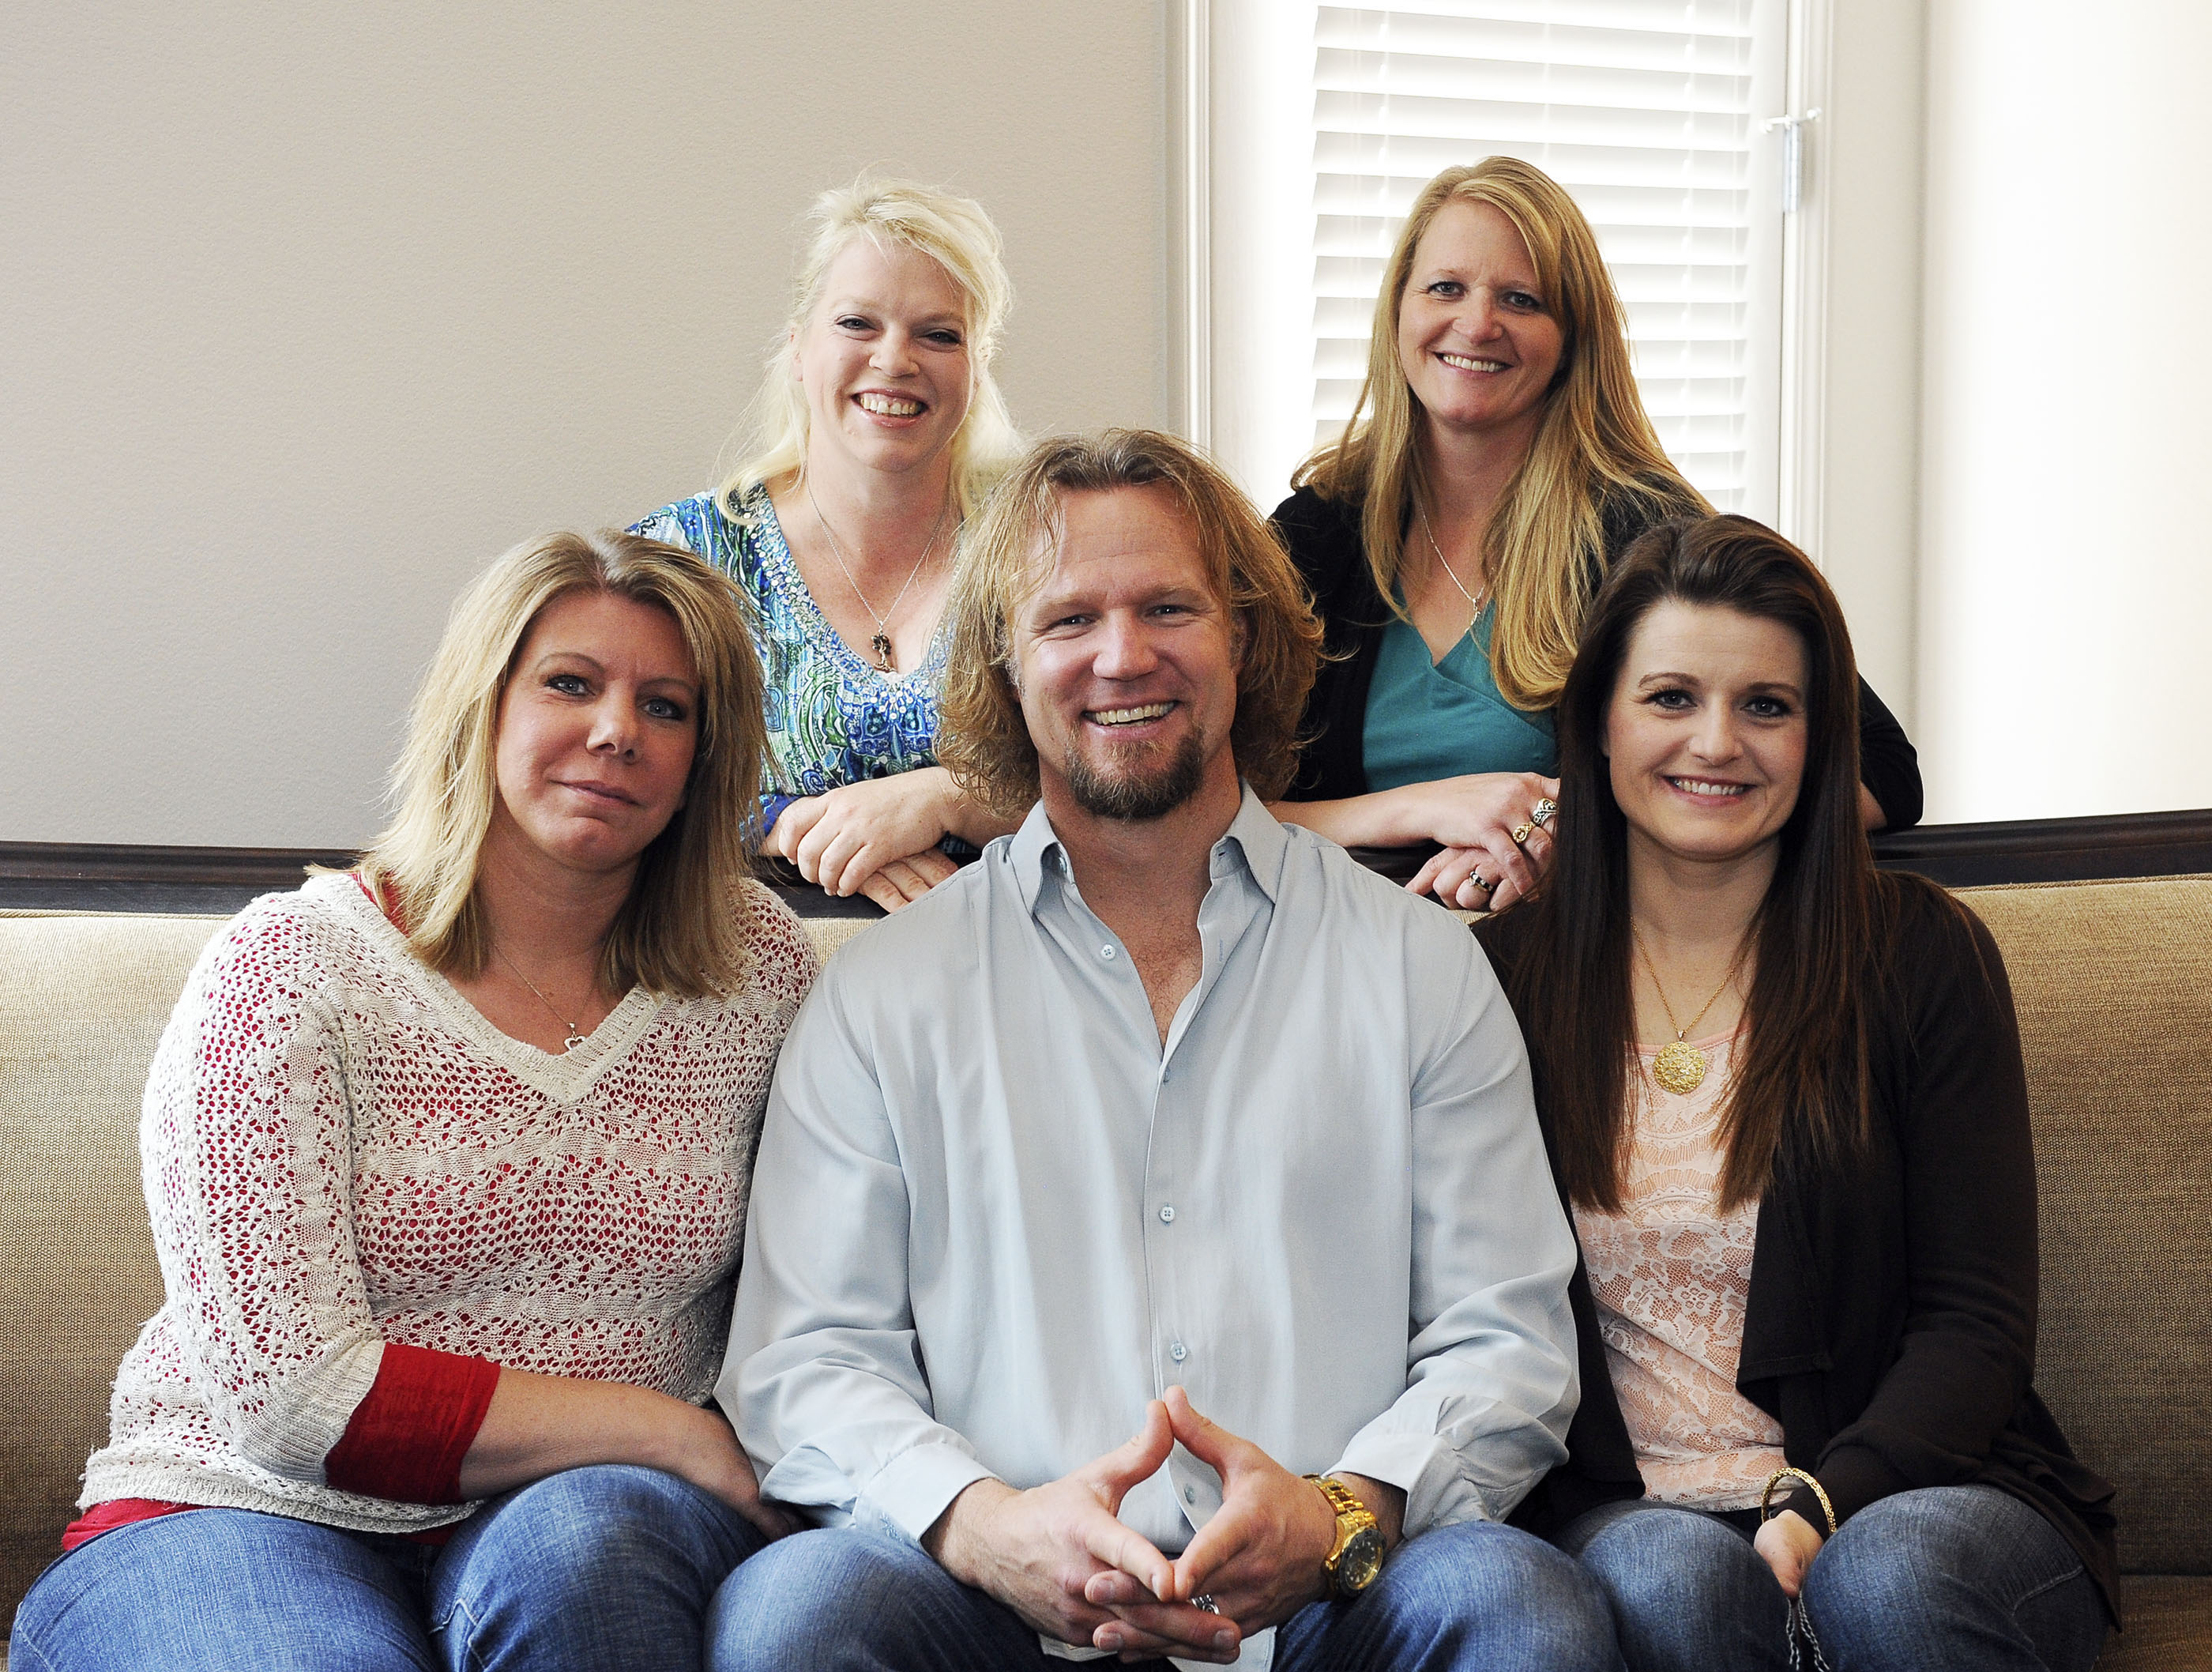 "FILE - In this July 10, 2013, file photo, Kody Brown poses with his wives at one of their homes in Las Vegas. Utah's attorney general has filed notice that he will appeal a ruling striking down parts of the state's anti-polygamy law in a lawsuit brought by the family on the TLC reality TV show ""Sister Wives."" Attorney General Sean Reyes filed the notice Wednesday, about a month after a federal judge issued a final ruling in the case. (AP Photo/Las Vegas Review-Journal, Jerry Henkel, File)"